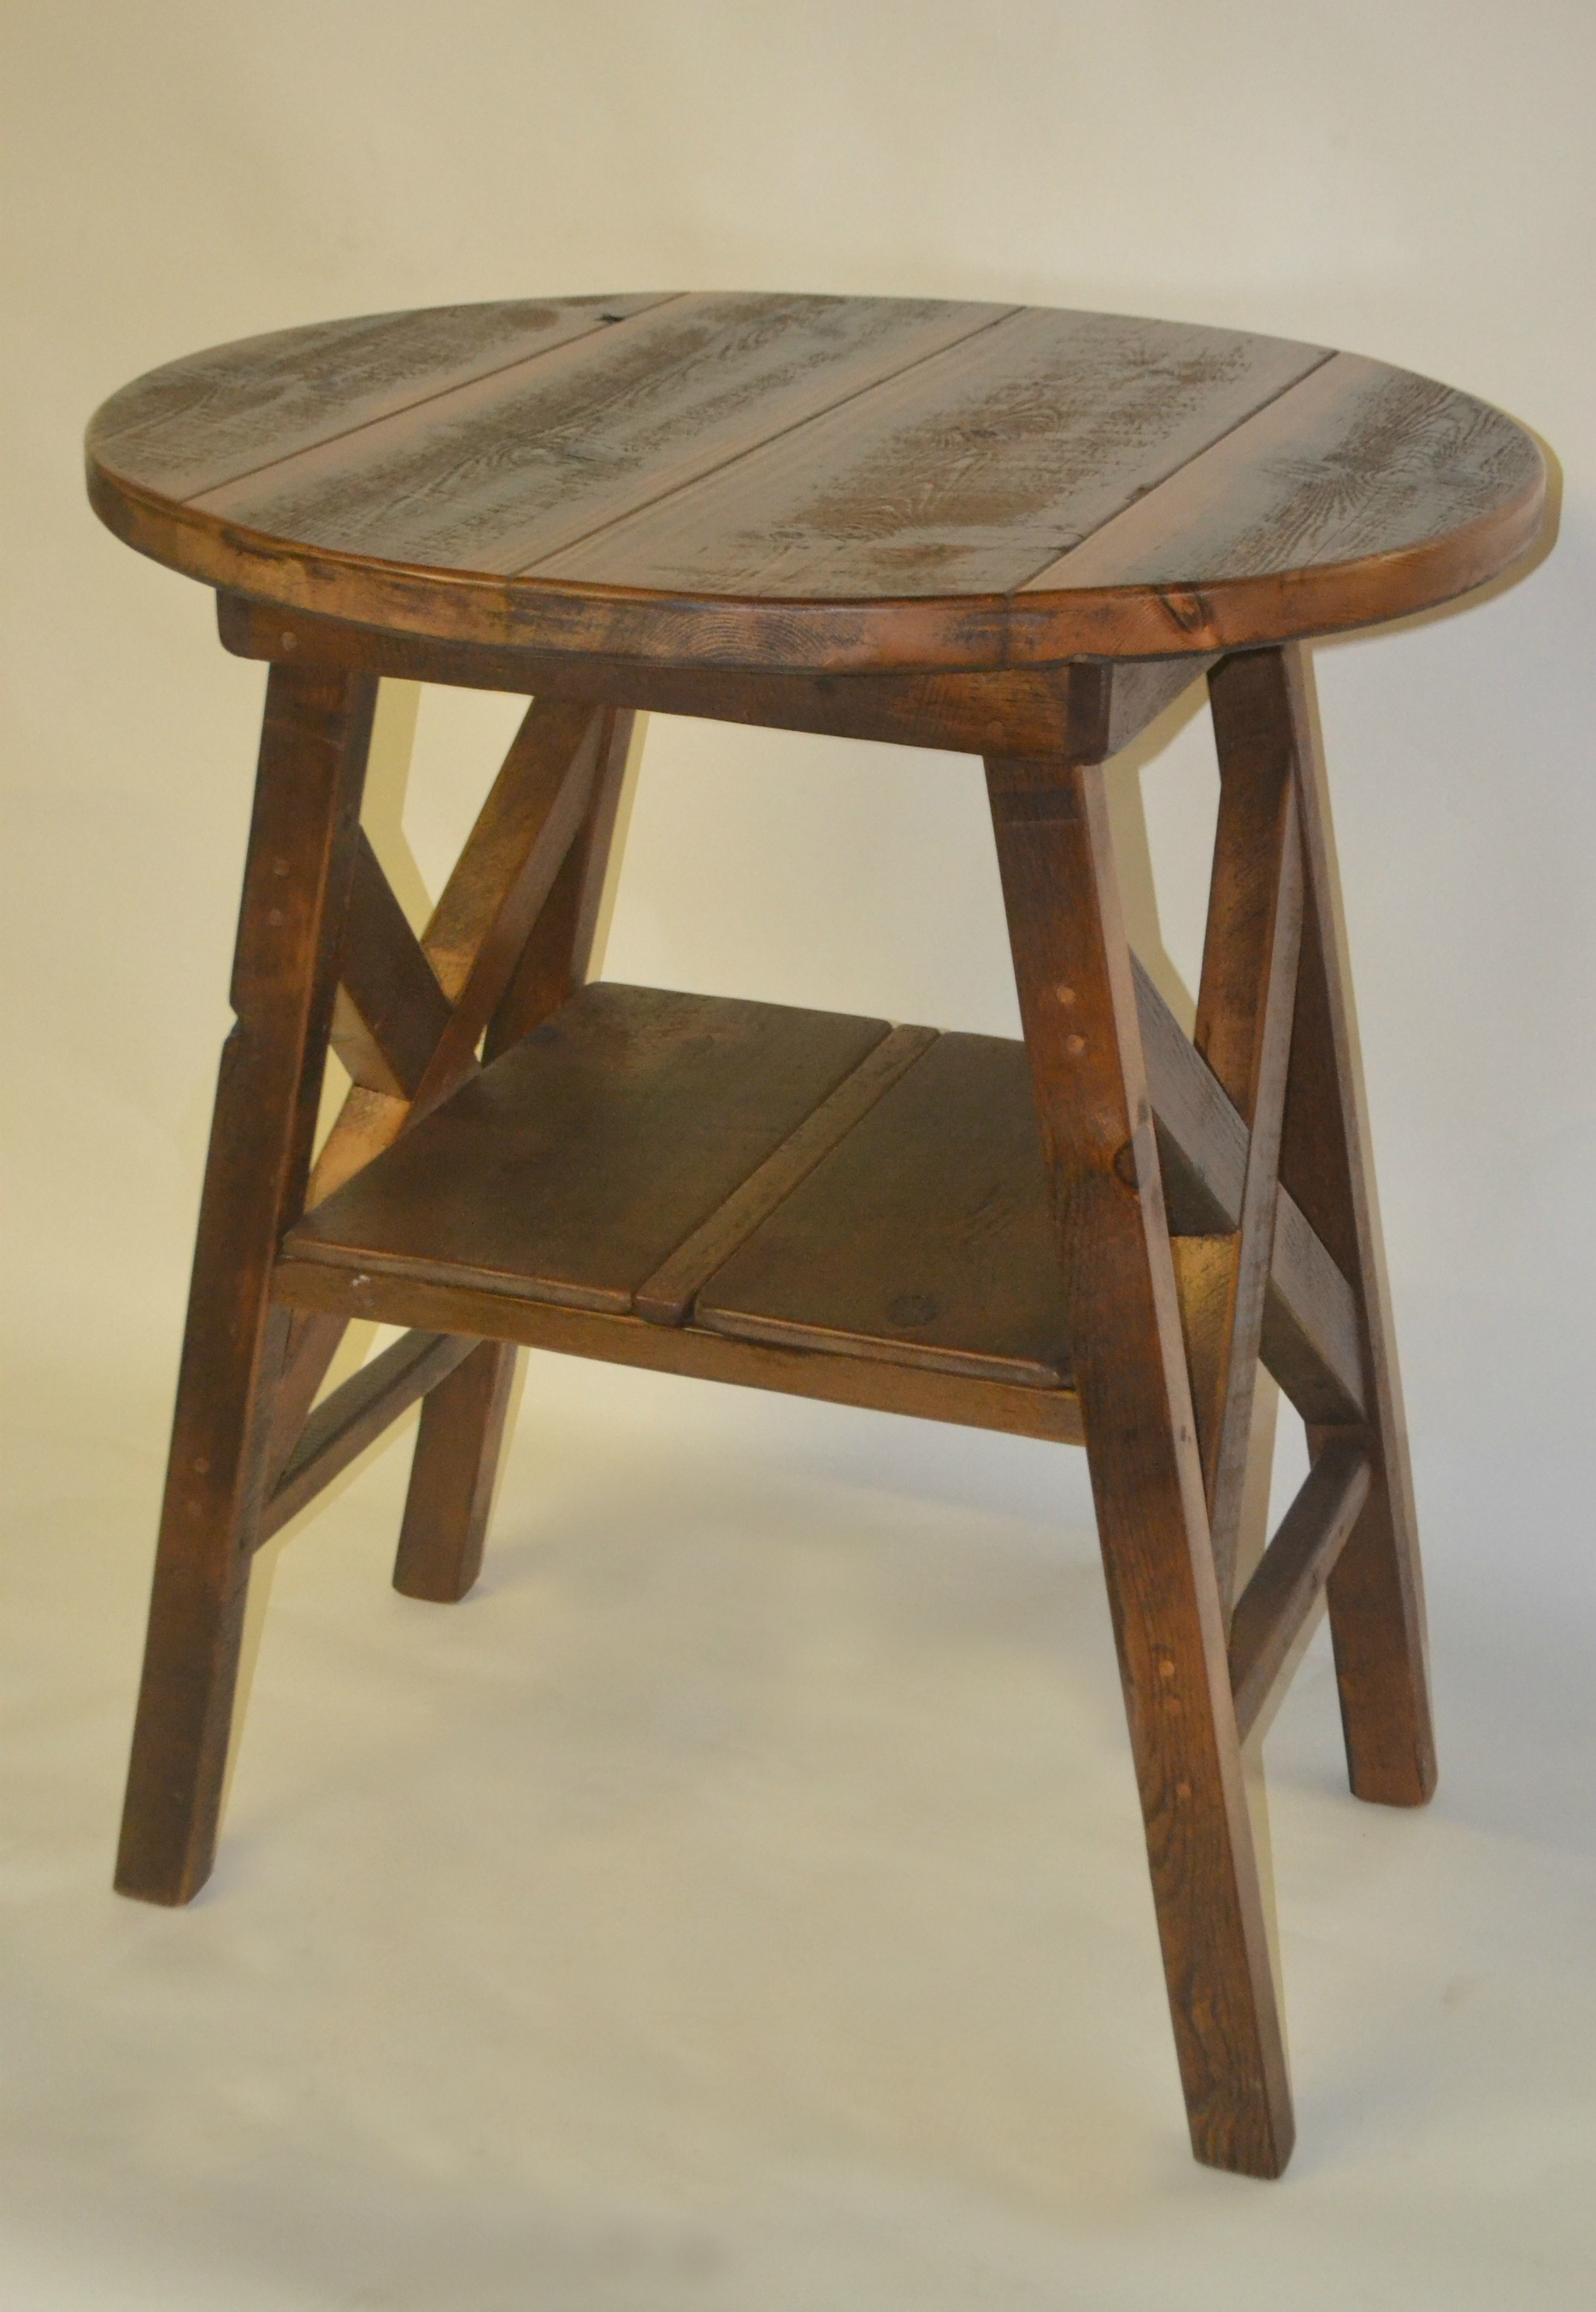 reclaimed barn wood furniture rustic mall timber creek dsc new barnwood accent table round pub sheesham dale tiffany lamp antique writing desk uttermost henzler end lucite and